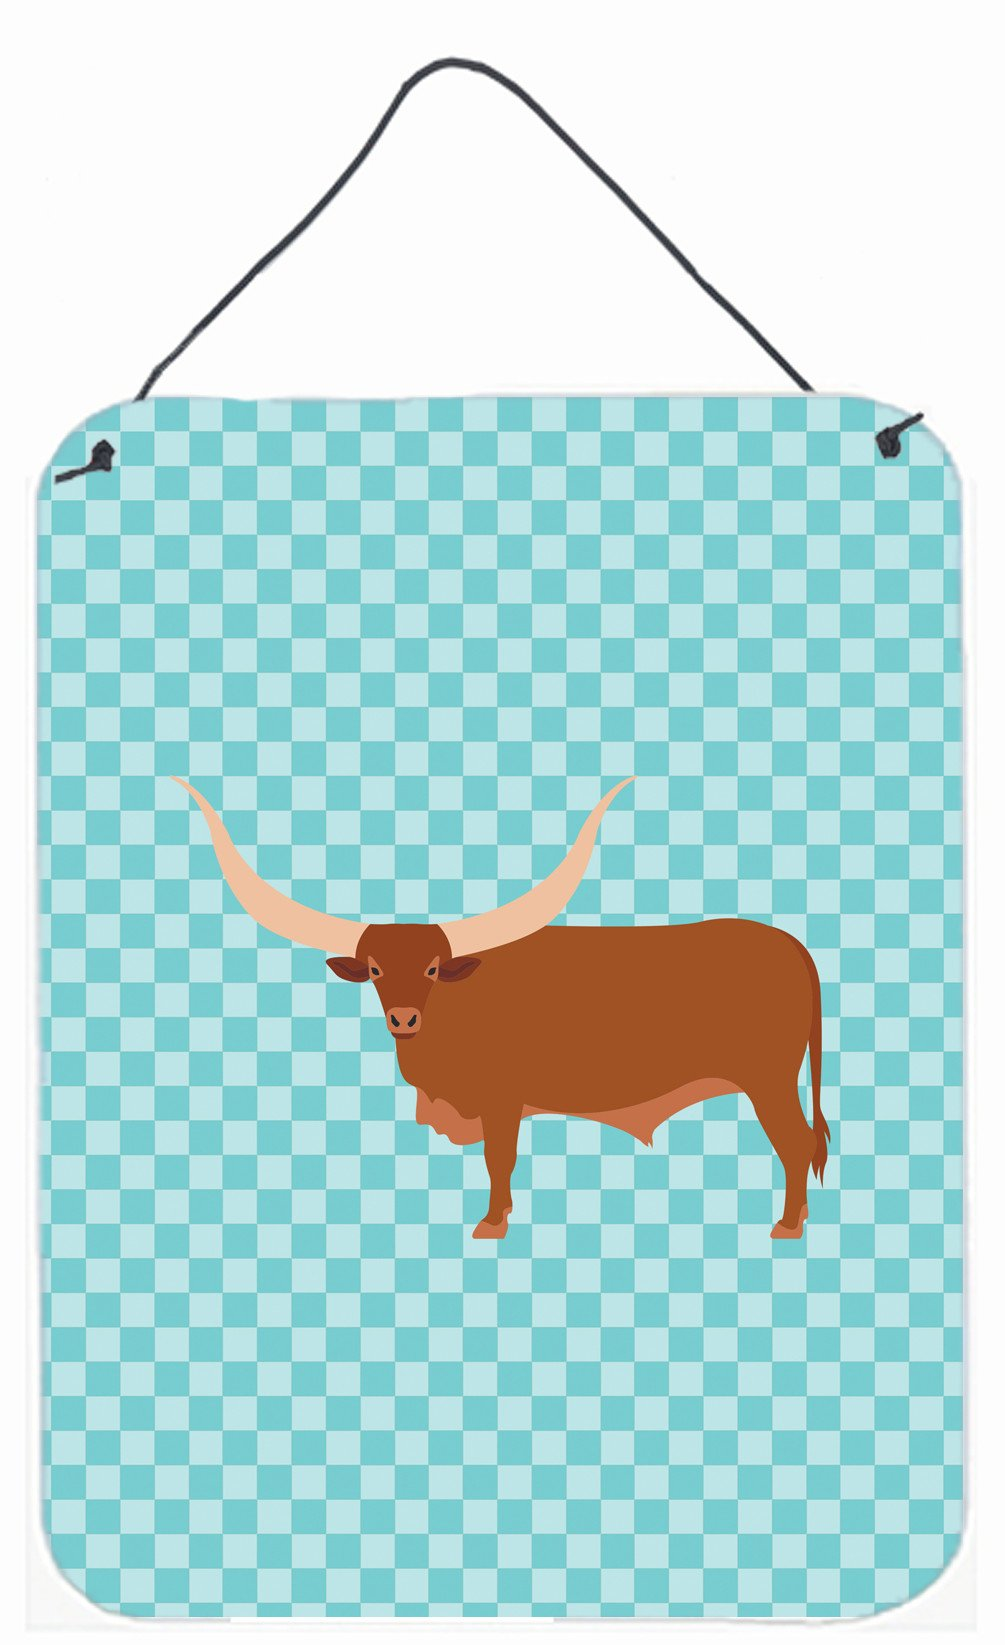 Ankole-Watusu Cow Blue Check Wall or Door Hanging Prints BB7997DS1216 by Caroline's Treasures